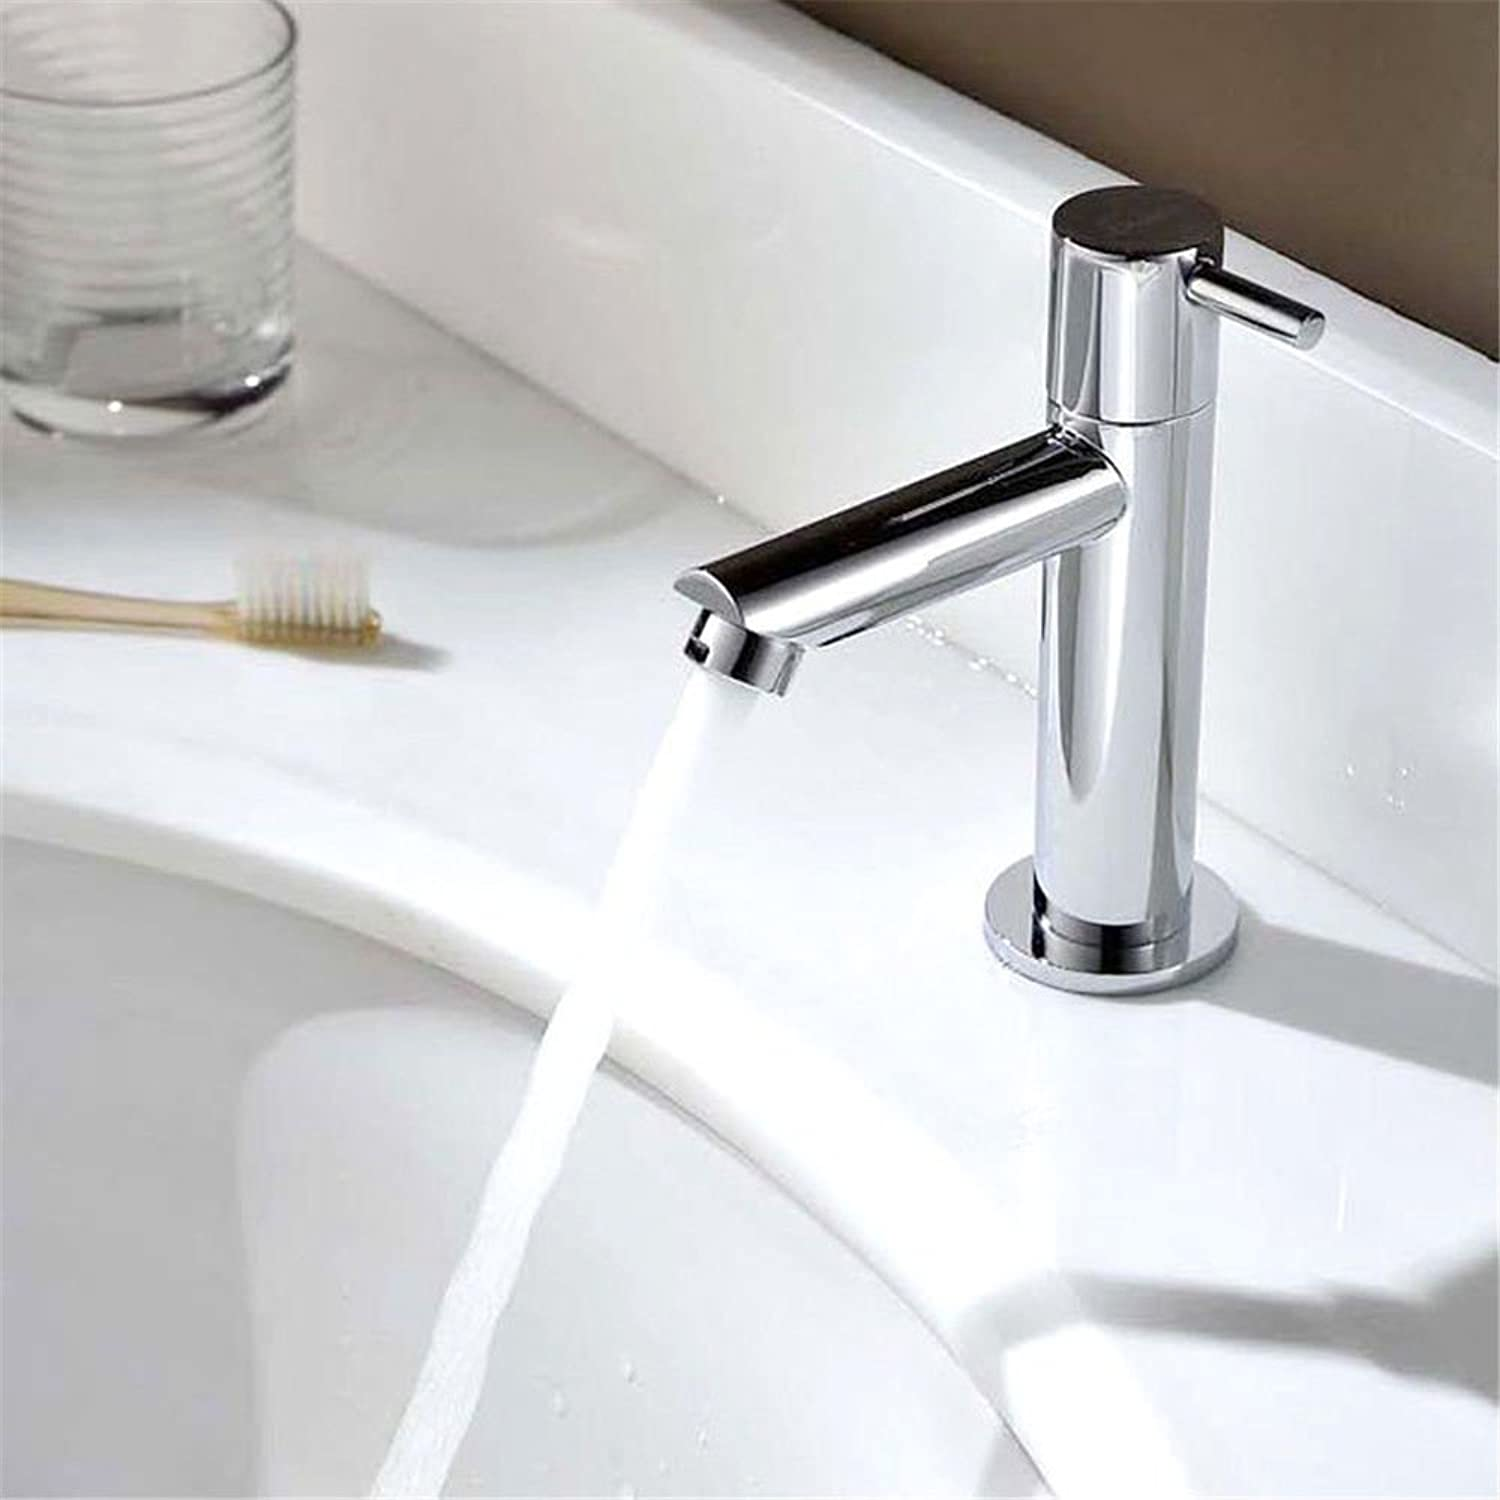 ETERNAL QUALITY Bathroom Sink Basin Tap Brass Mixer Tap Washroom Mixer Faucet Basin Mixer Taps full copper single cold basin faucet single on-the-water faucet Kitchen Sin